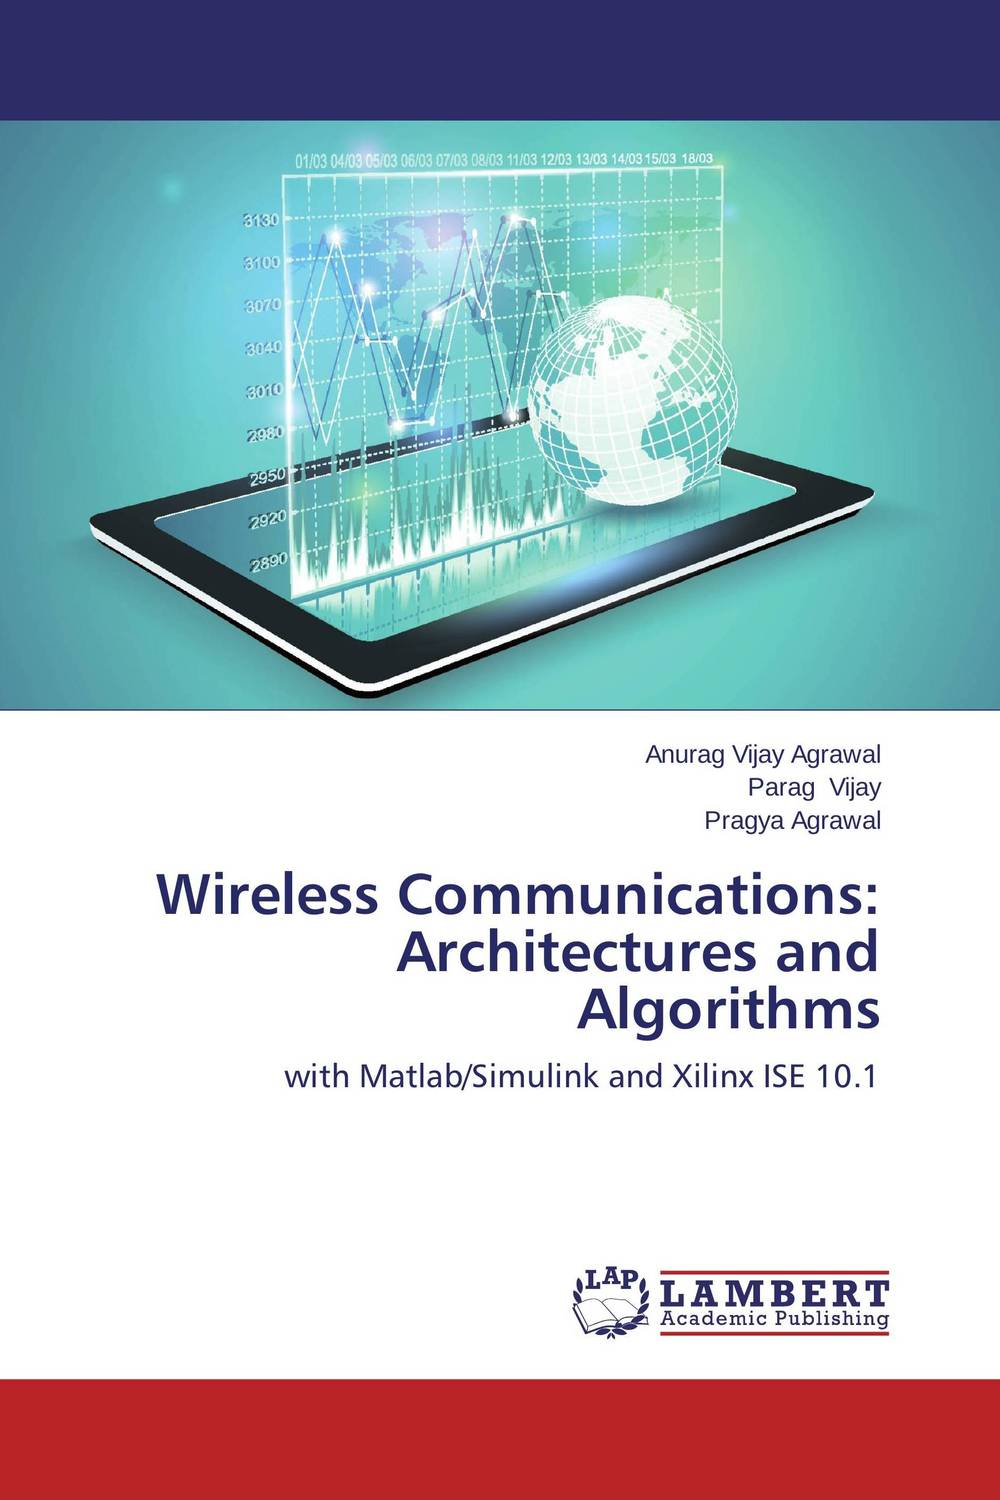 Wireless Communications: Architectures and Algorithms principles of communications